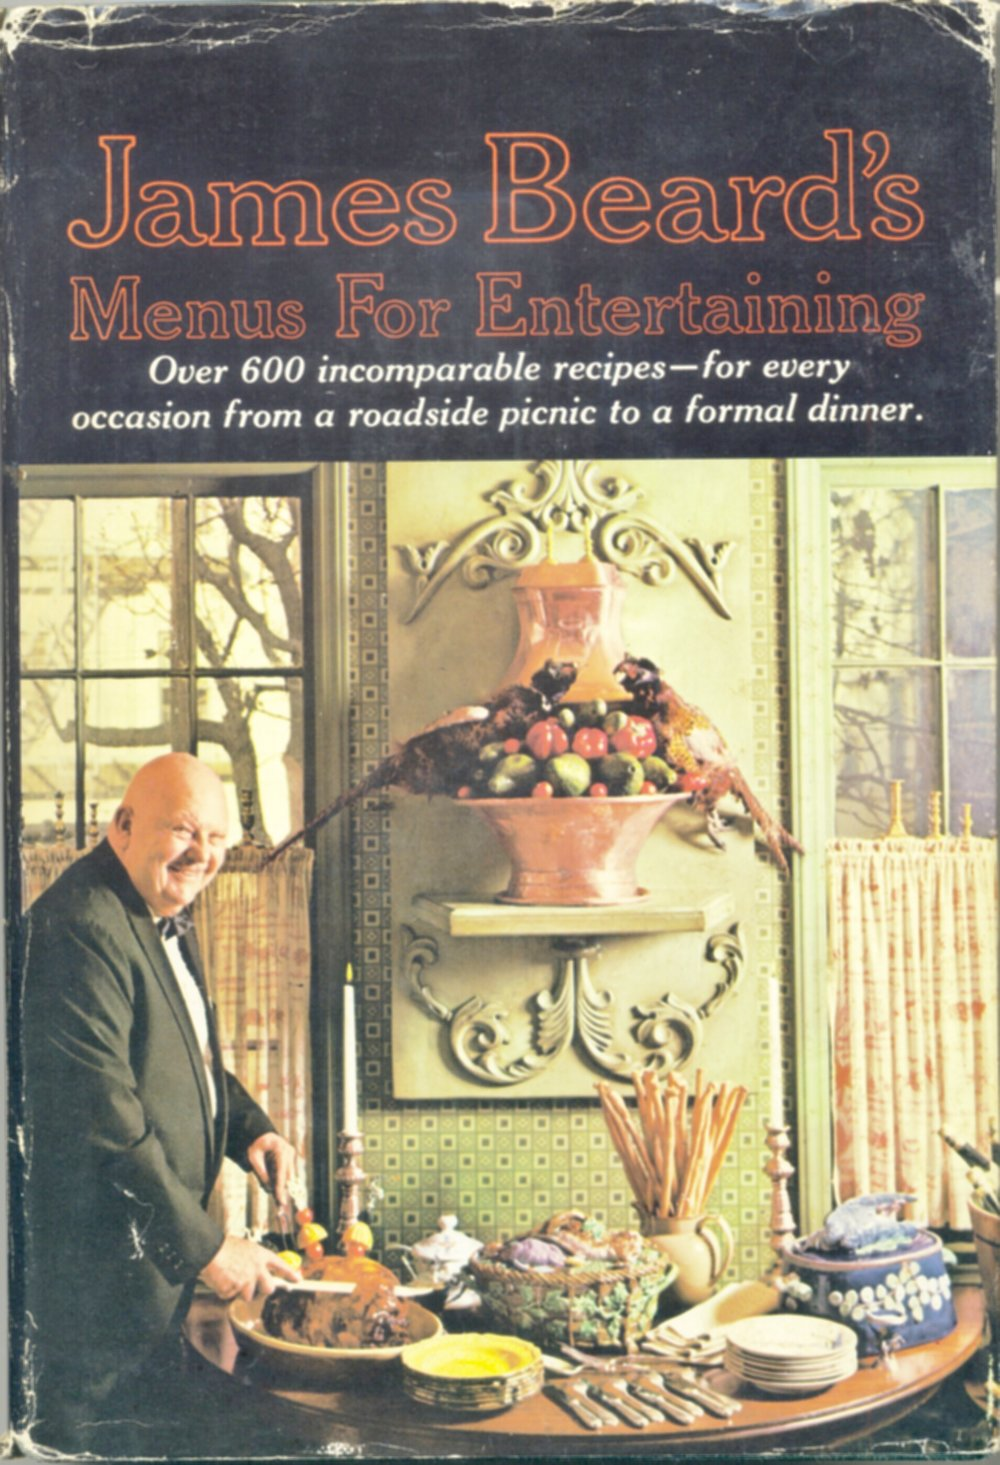 James Beard's Menus for Entertaining, 1965 Book Club Edition ...book club editions are not as valuable as regular retail editions